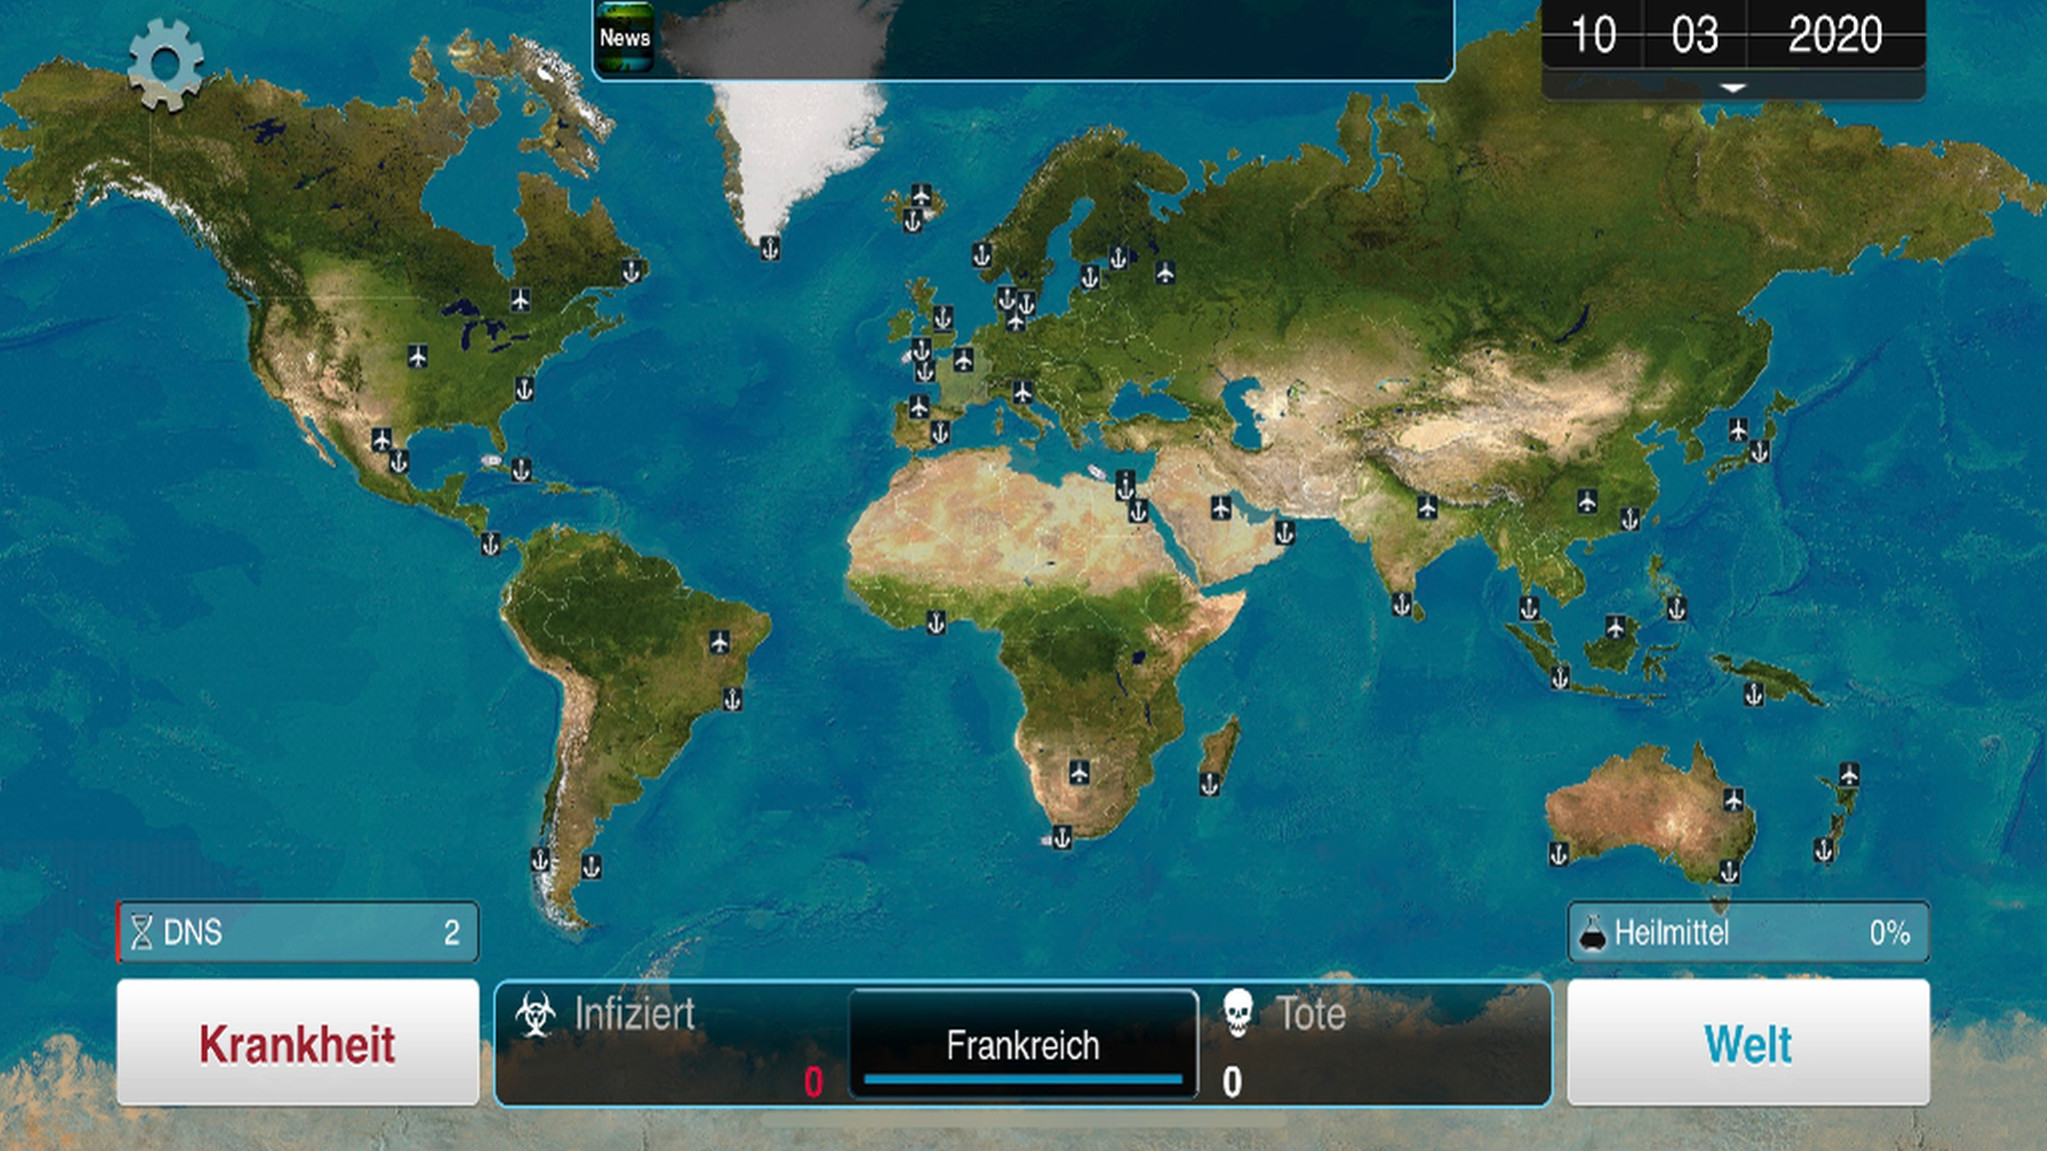 Screenshot 1 - Plague Inc. (App für iPhone & iPad)